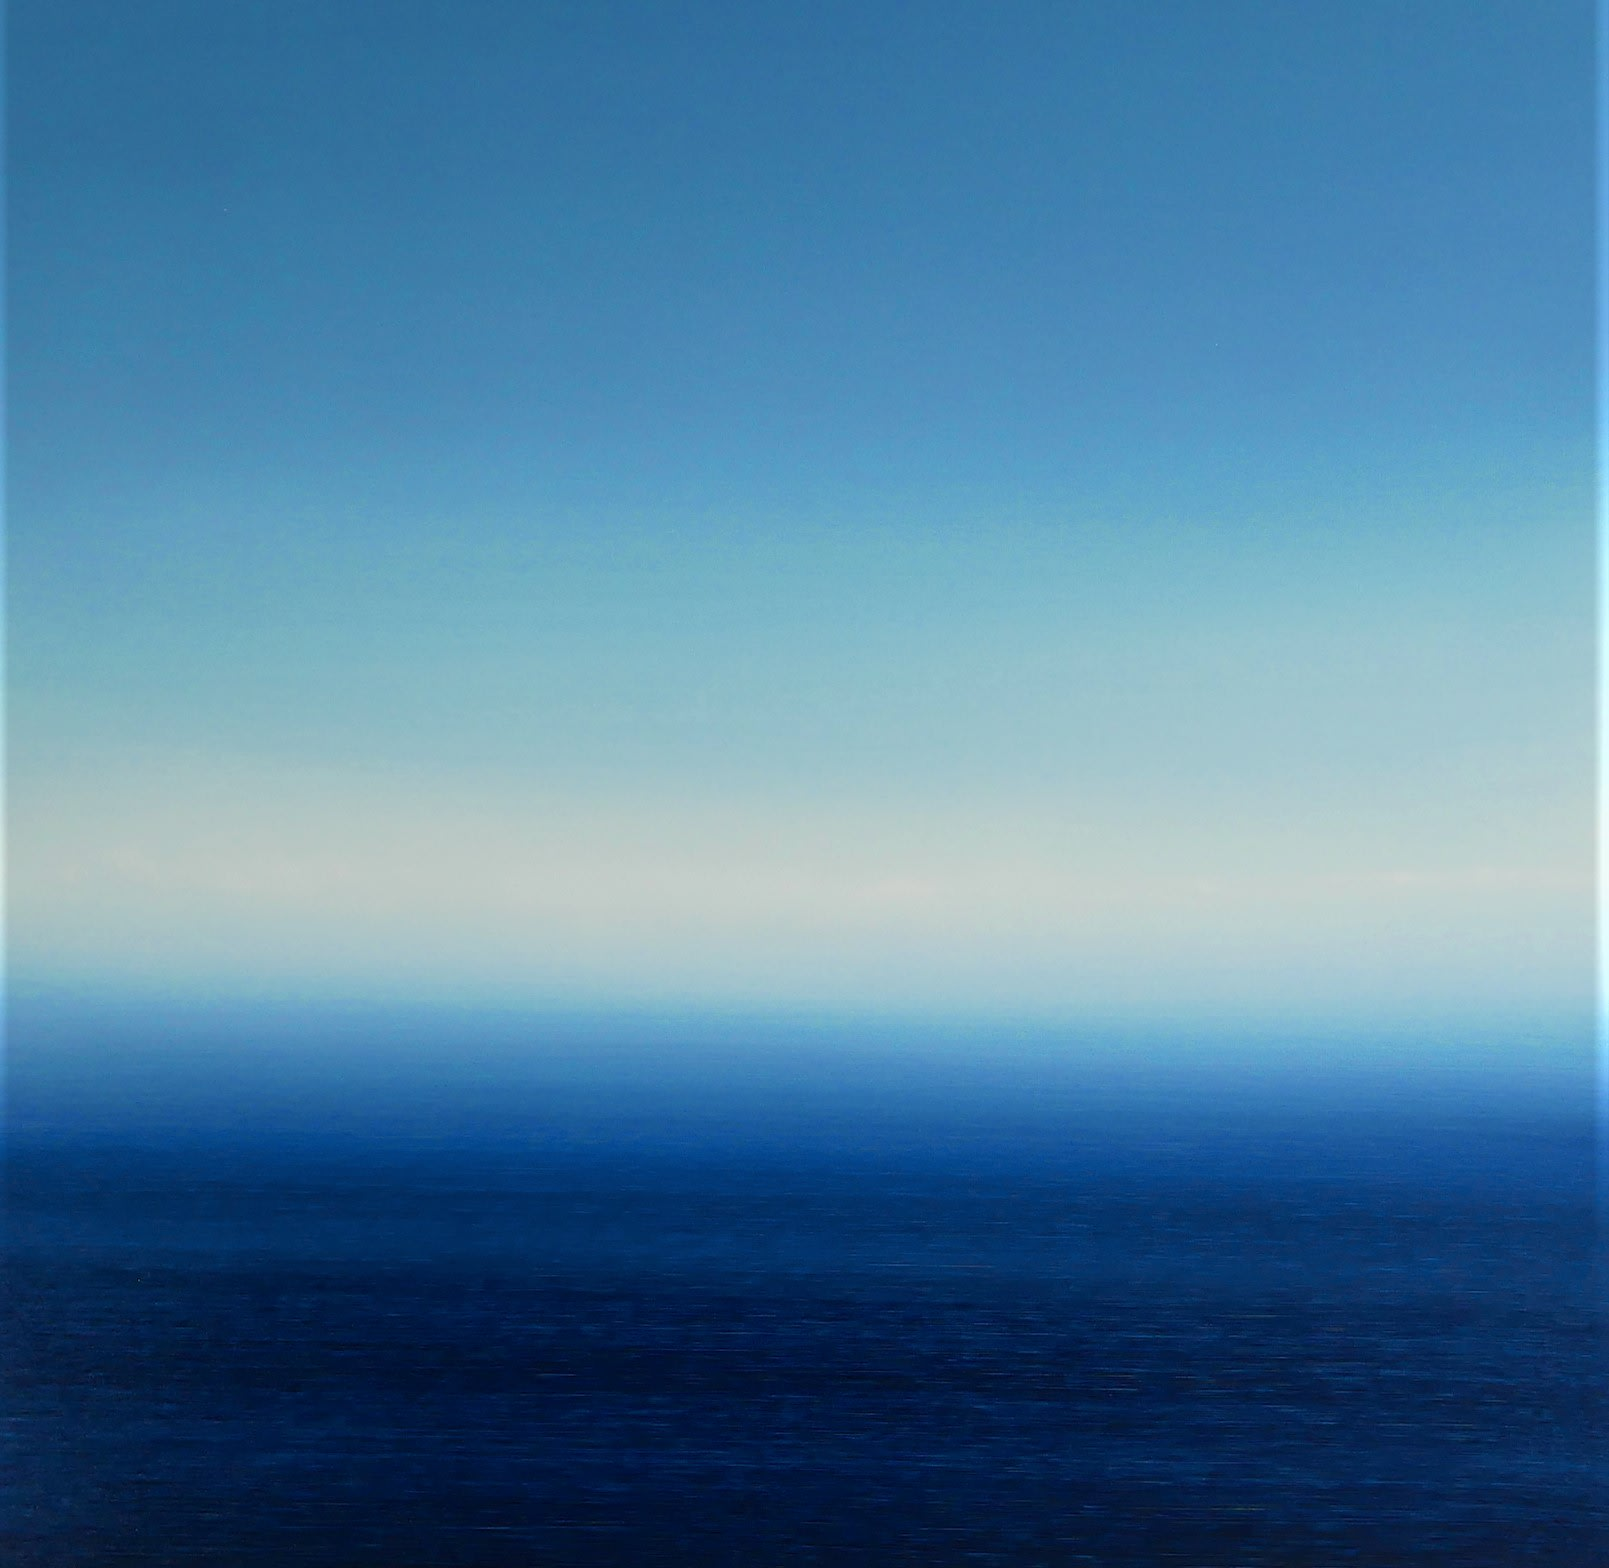 """<span class=""""link fancybox-details-link""""><a href=""""/store/artworks/8072-martyn-perryman-ocean-meditations-2-2021/"""">View Detail Page</a></span><div class=""""artist""""><strong>Martyn Perryman</strong></div> <div class=""""title""""><em>Ocean Meditations 2</em>, 2021</div> <div class=""""signed_and_dated"""">signed on verso</div> <div class=""""medium"""">oil on canvas <br /> framed</div> <div class=""""dimensions"""">canvas: 70 x 70 cm <br /> framed: 80 x 80 cm </div><div class=""""price"""">£1,100.00</div><div class=""""copyright_line"""">Own Art: £110 x 10 Months, 0% APR</div>"""